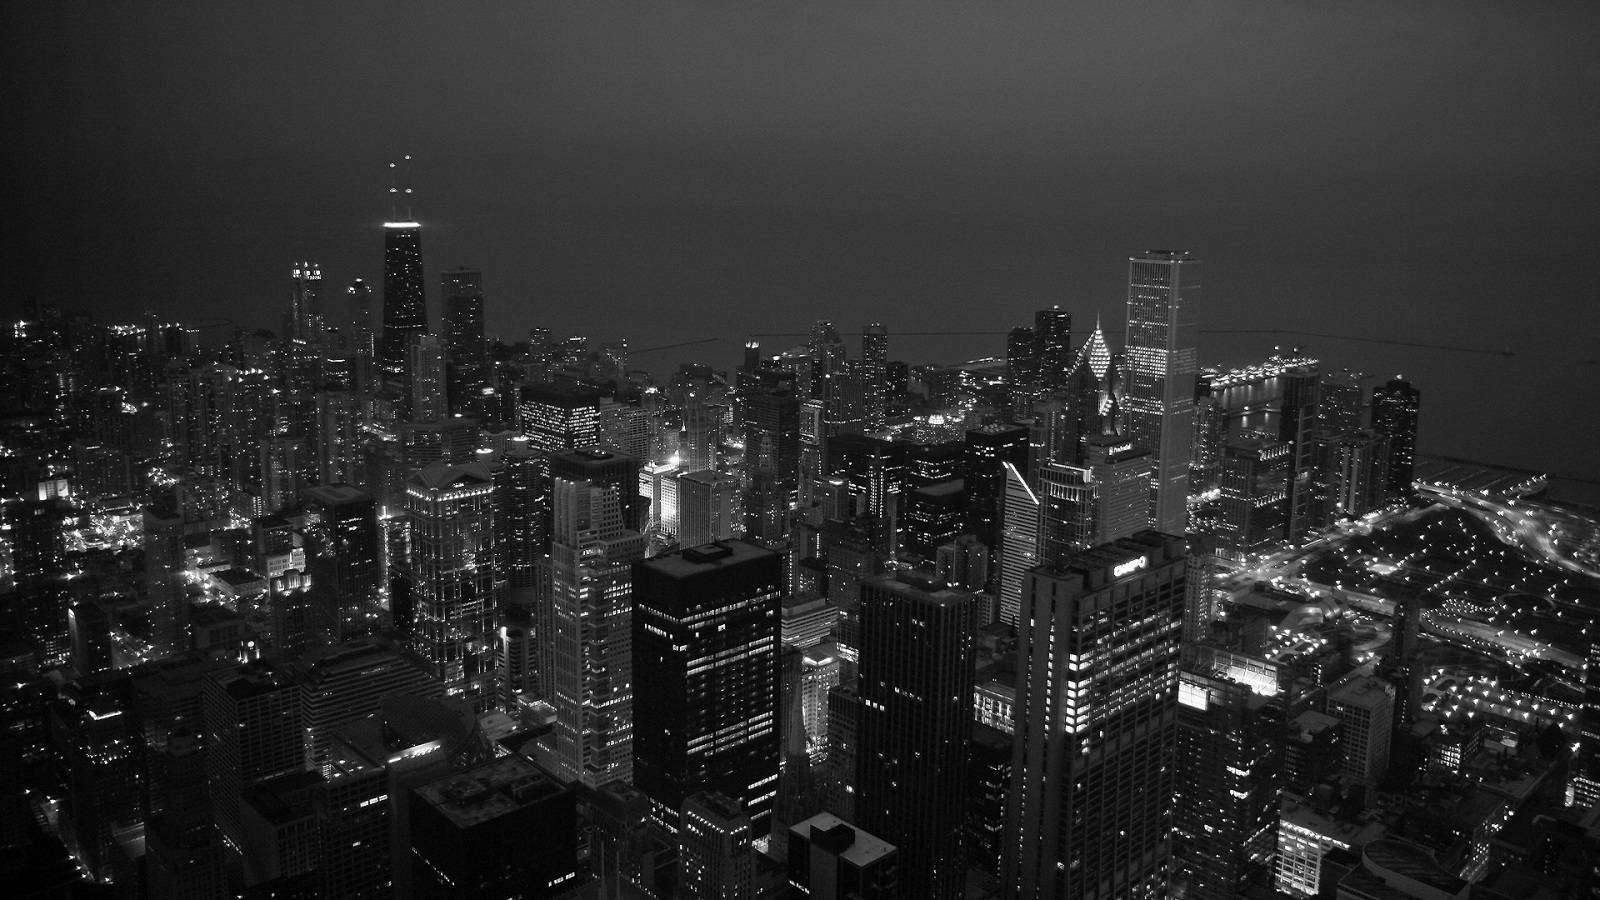 A Chicago Nighttime Photo by jakeroot